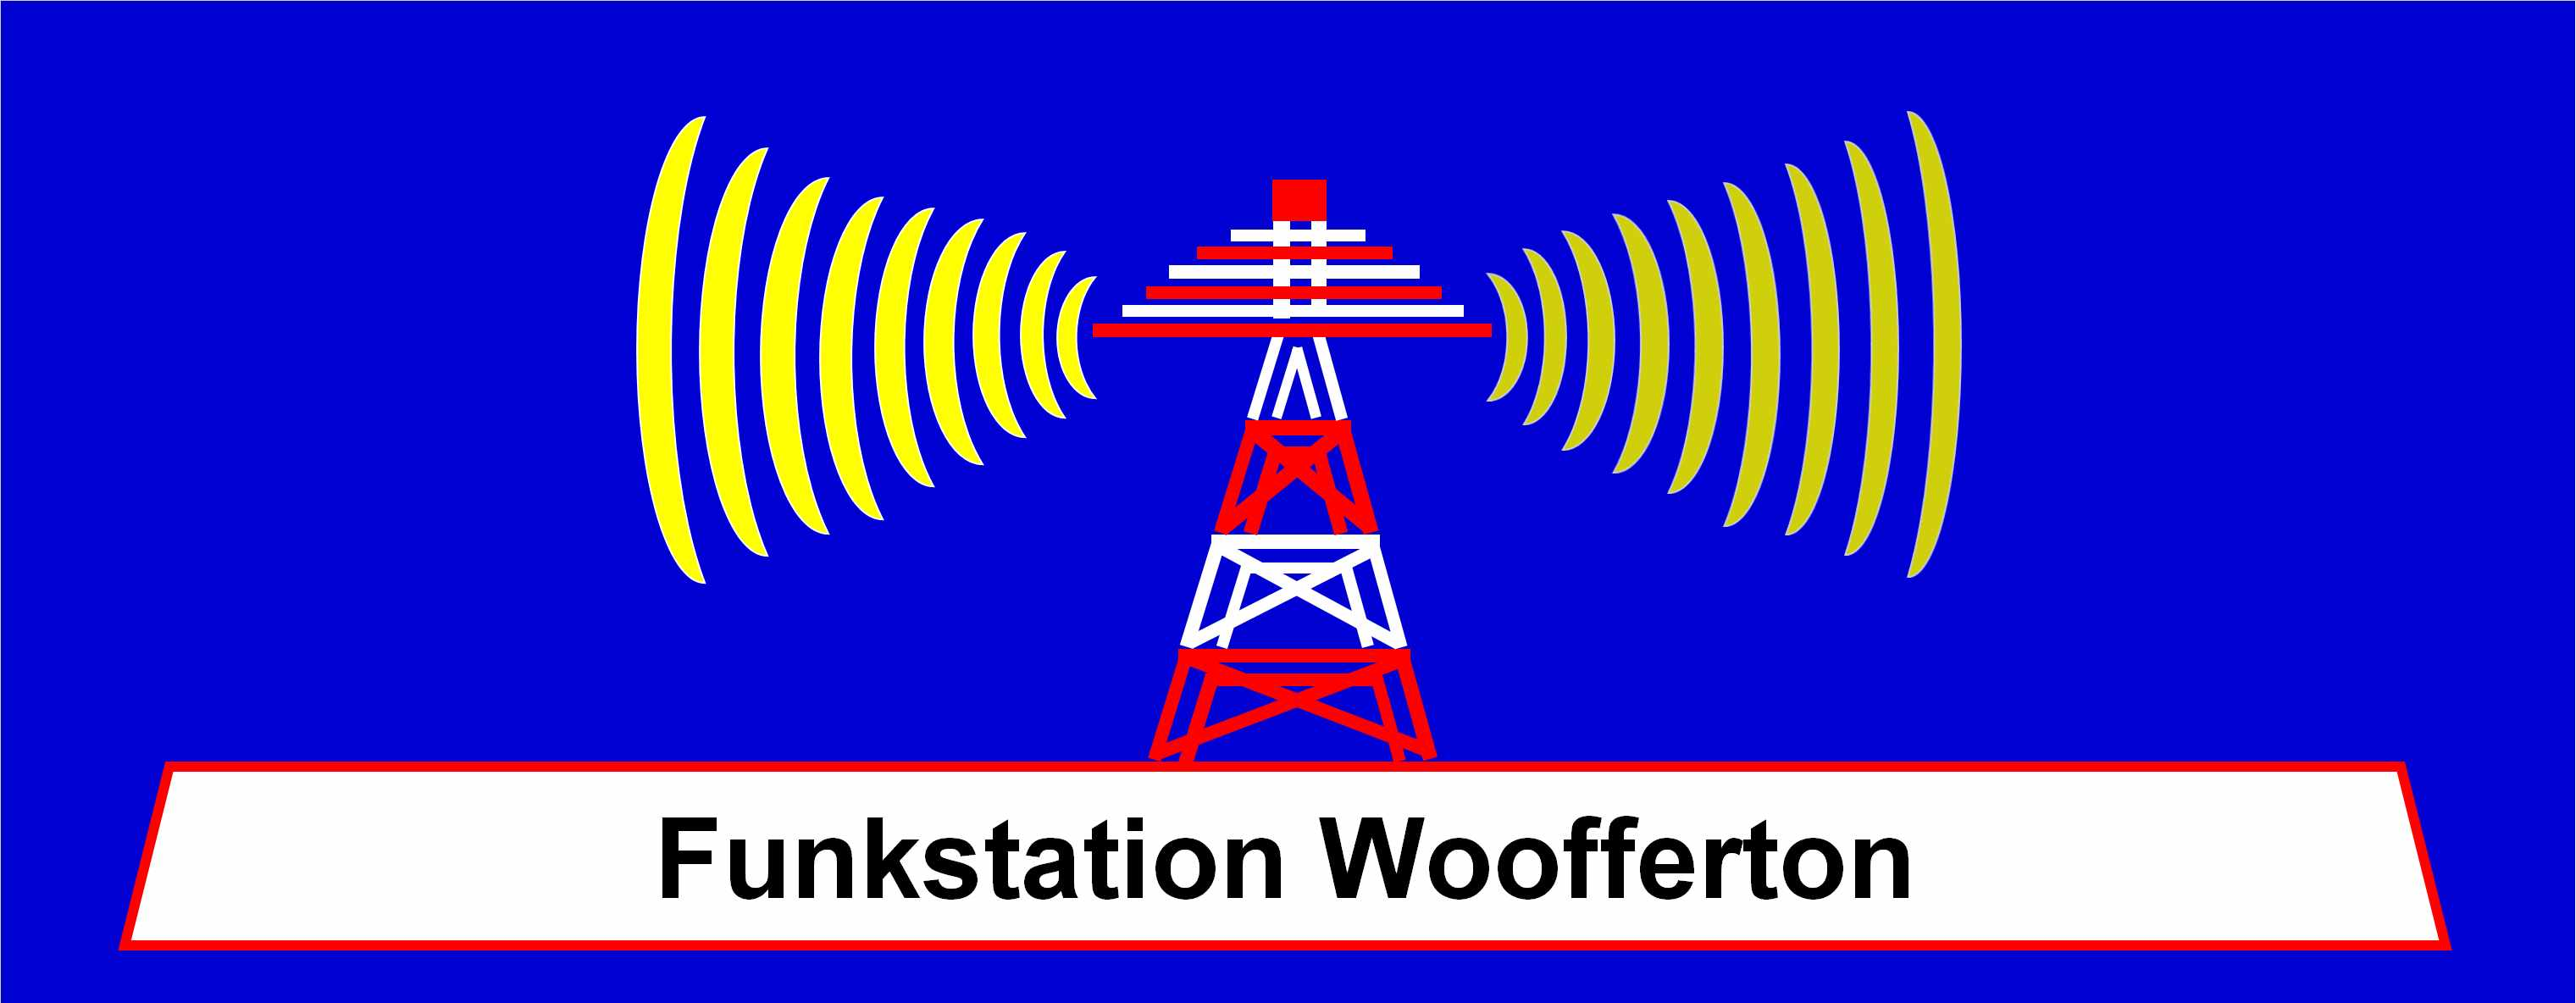 Funkstation Woofferton